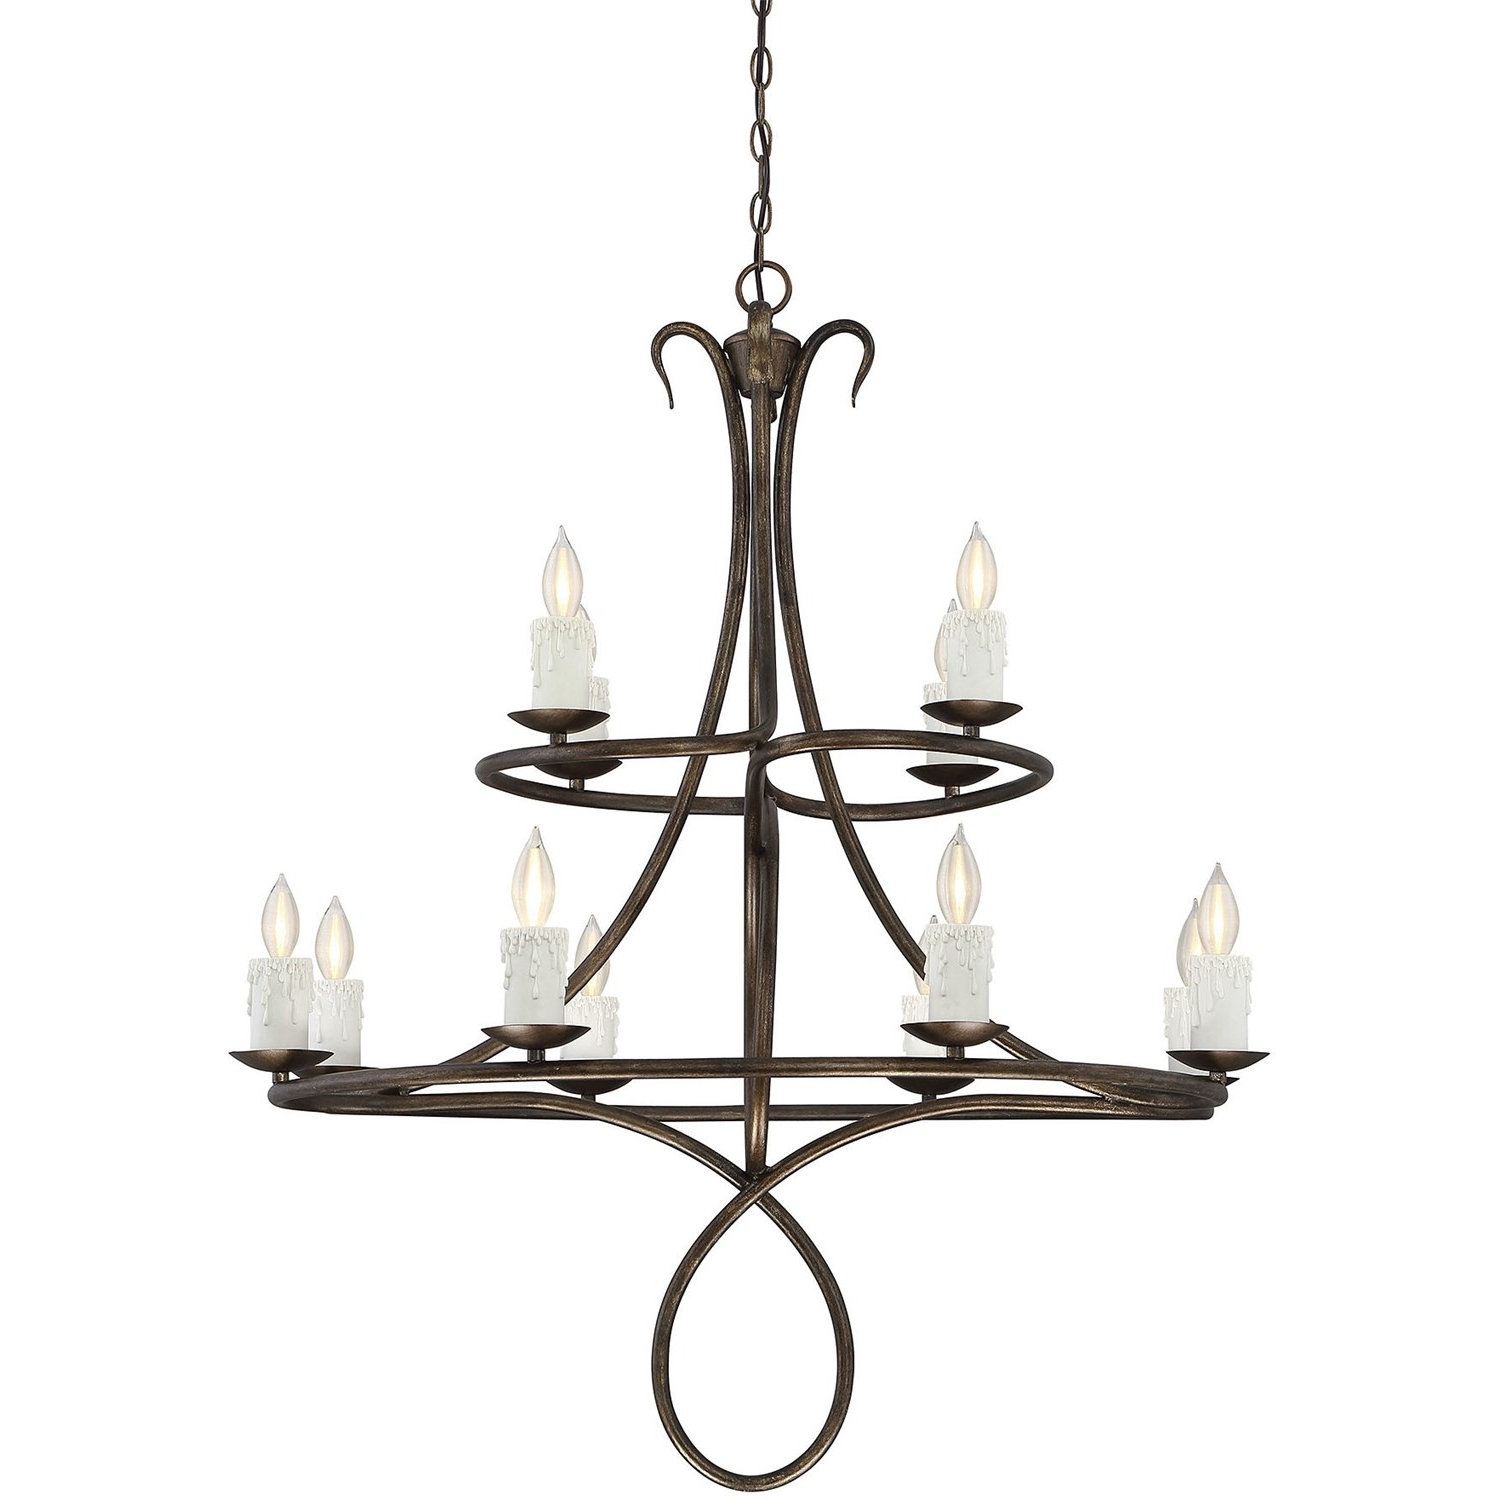 Most Popular Savoy House Chandeliers With Regard To Savoy House 1 171 12 131 Lynch 12 Light Chandelier In Guilded Bronze (View 9 of 20)